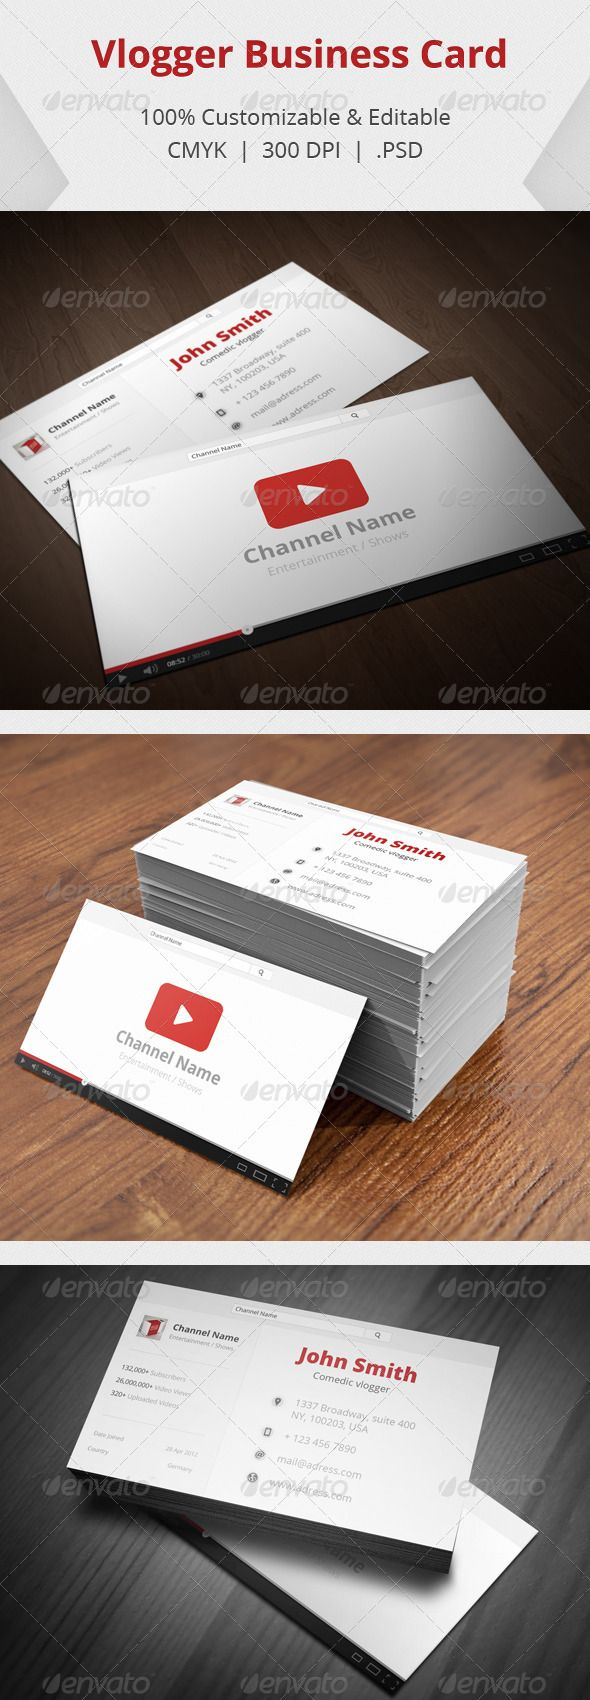 Vlogger business card pinterest business cards business and fonts vlogger business card for sale on graphic river httpgraphicriveritemvlogger business card3708891 reheart Image collections